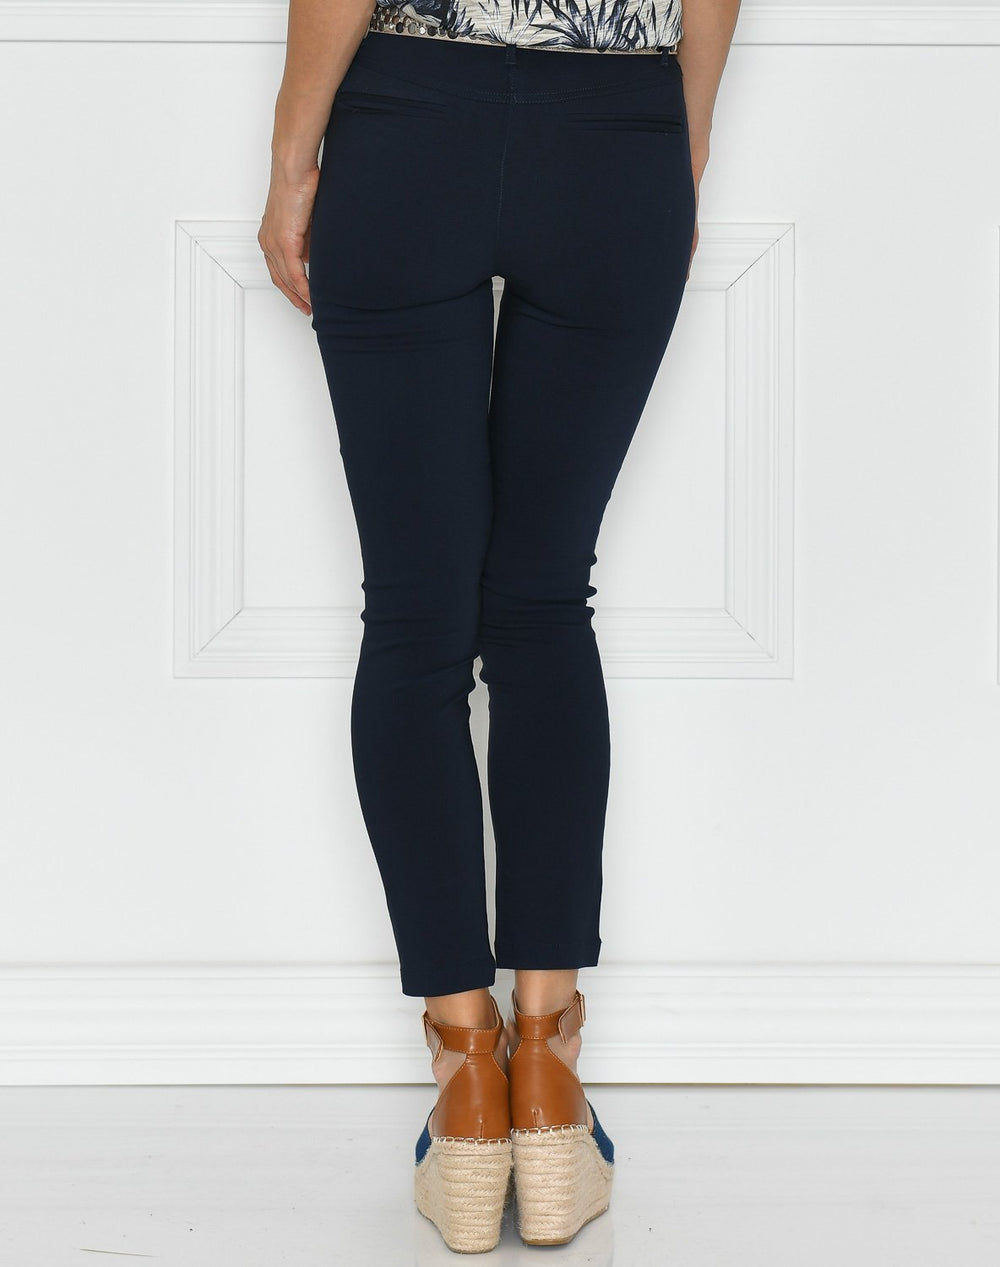 Soya Lilly 29 pants navy - Online-Mode